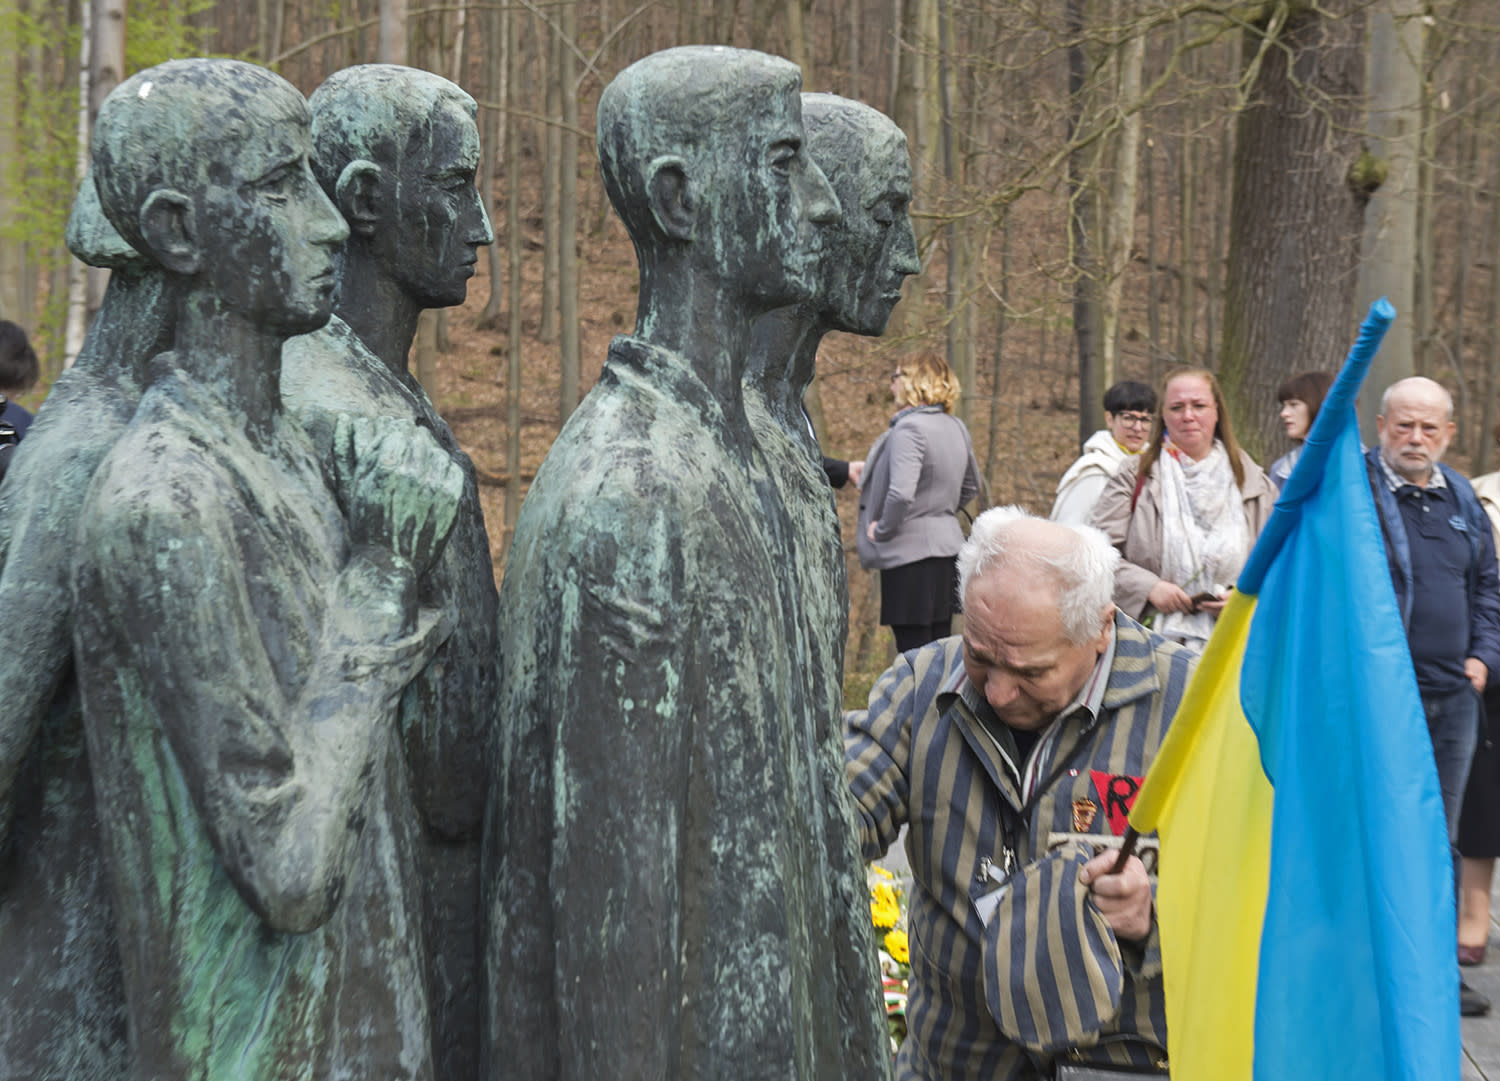 <p>Nazi concentration camp survivor Petro Fedorowitsch Mischuk of Ukraine holds his cap at a memorial during the commemoration ceremonies for the 72th anniversary of the liberation of former Nazi concentration camp Mittelbau-Dora near Nordhausen, central Germany, Monday, April 10, 2017. (Photo: Jens Meyer/AP) </p>